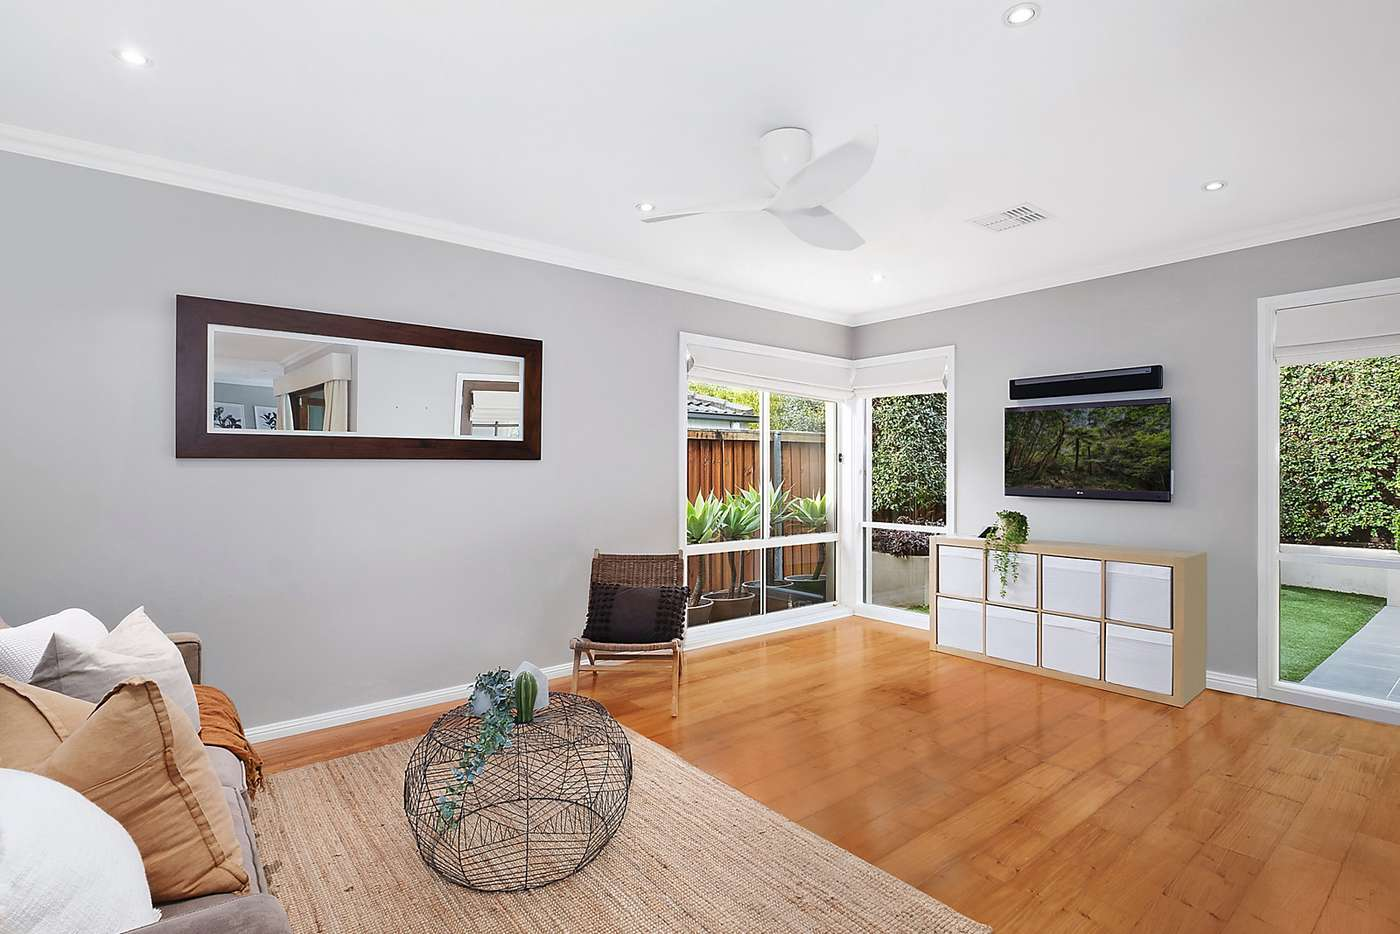 Sixth view of Homely house listing, 152 Perfection Avenue, Stanhope Gardens NSW 2768